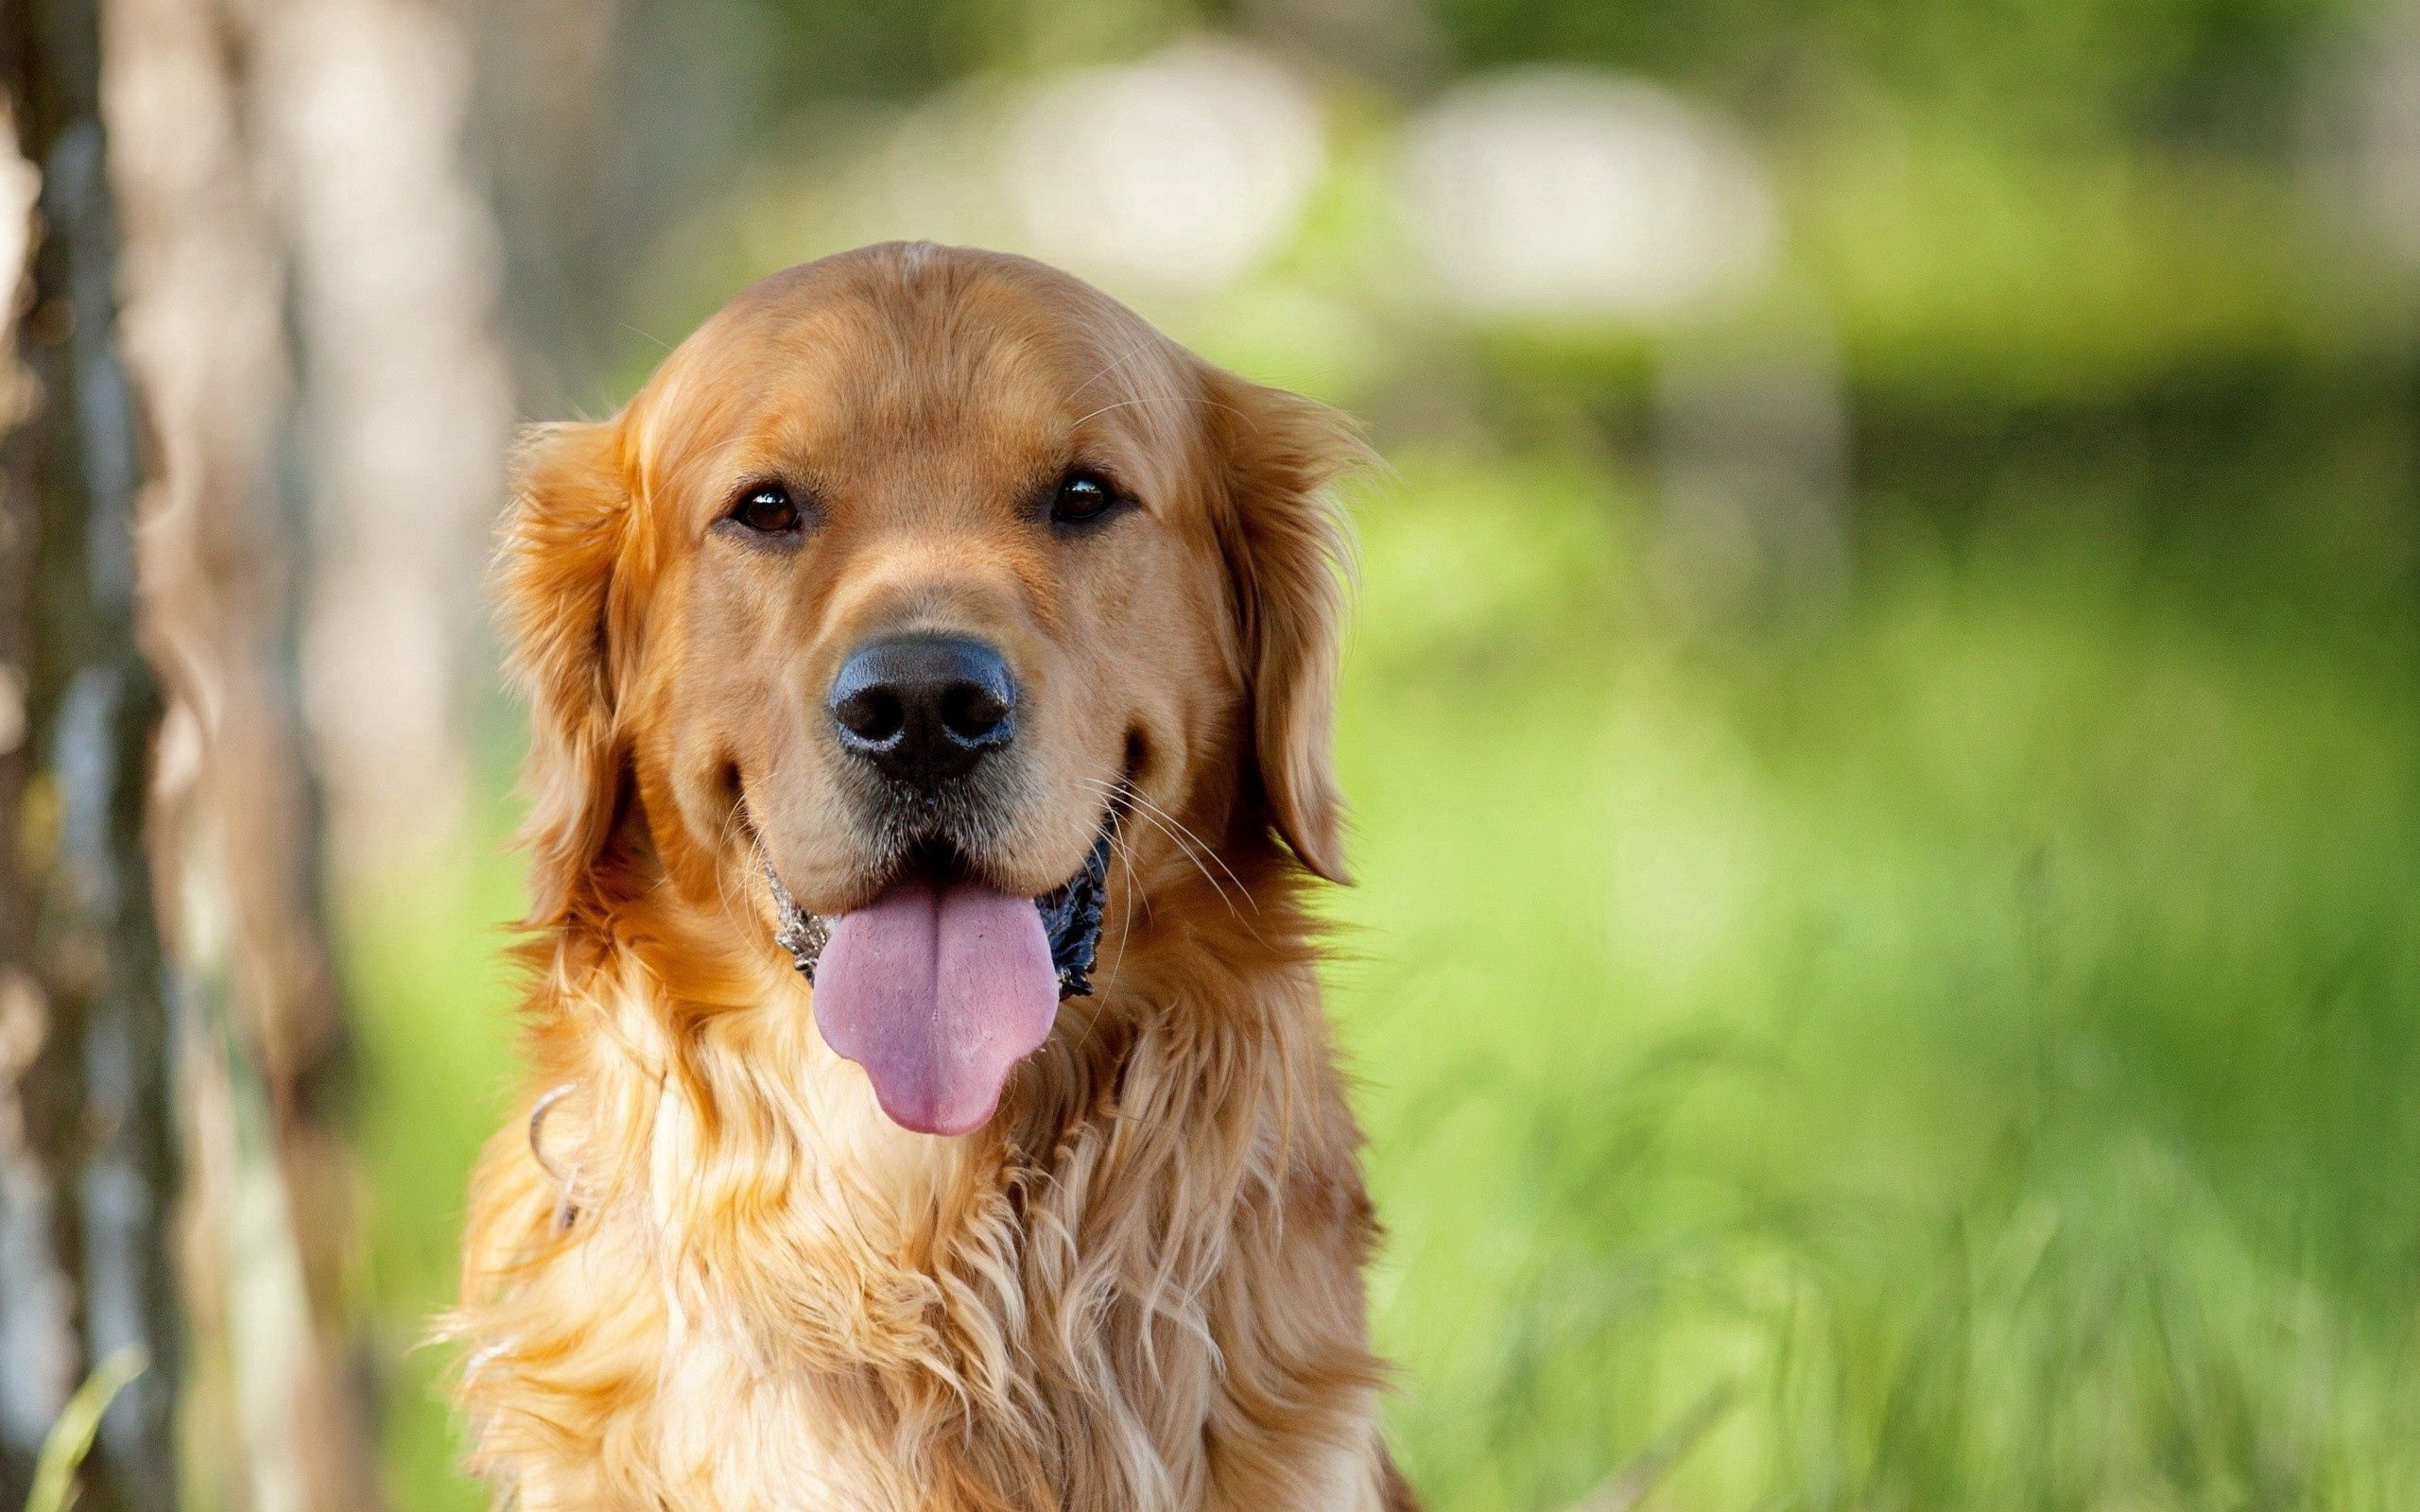 82973 download wallpaper Animals, Dog, Language, Tongue, Grass, Relaxation, Rest, Fluffy screensavers and pictures for free